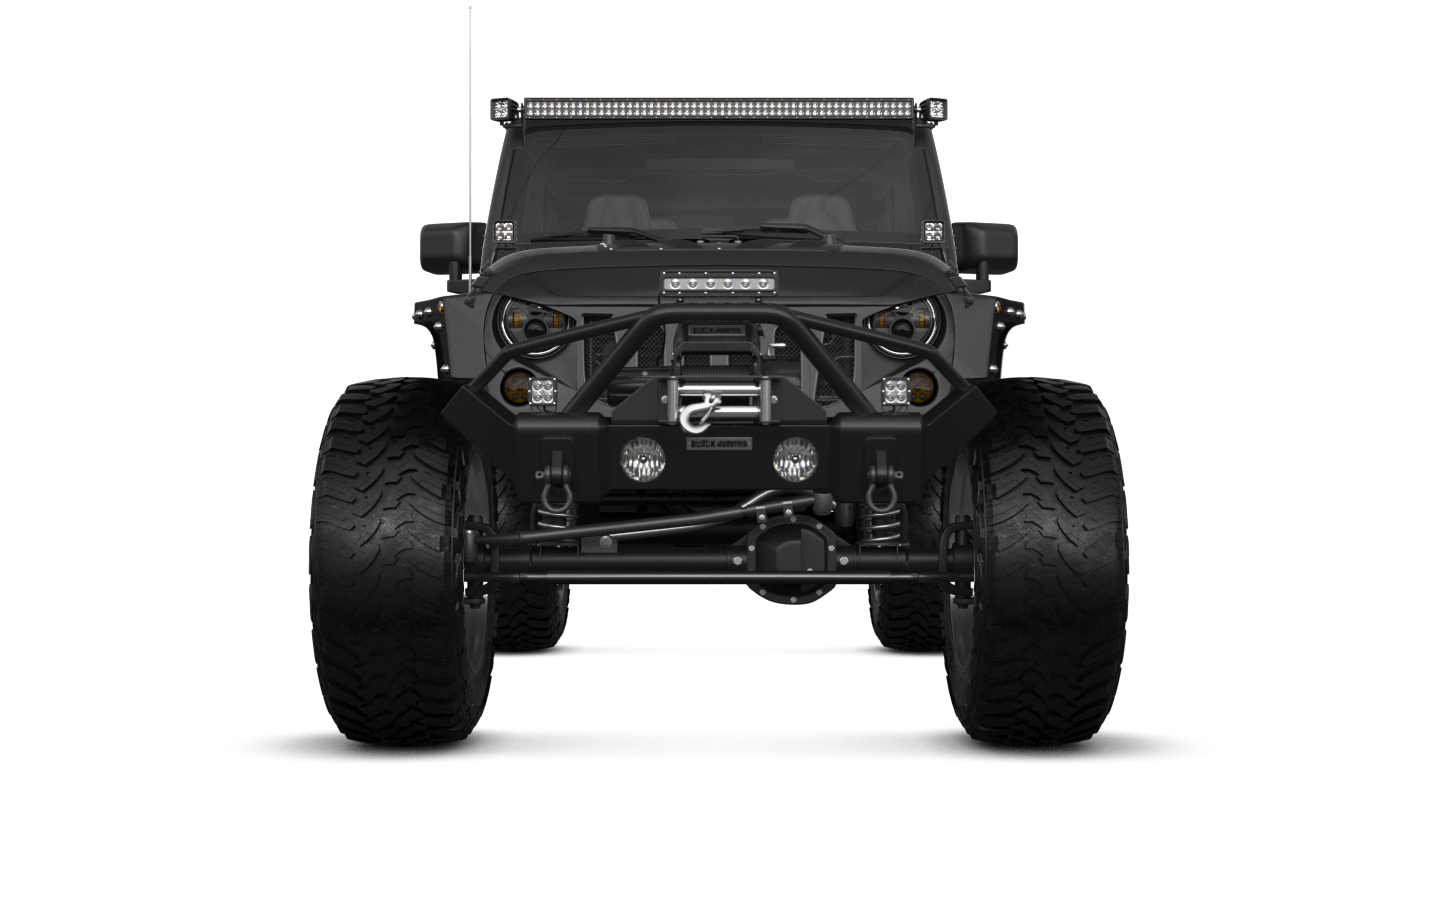 Jeep Wrangler Unlimited Rubicon Recon'17